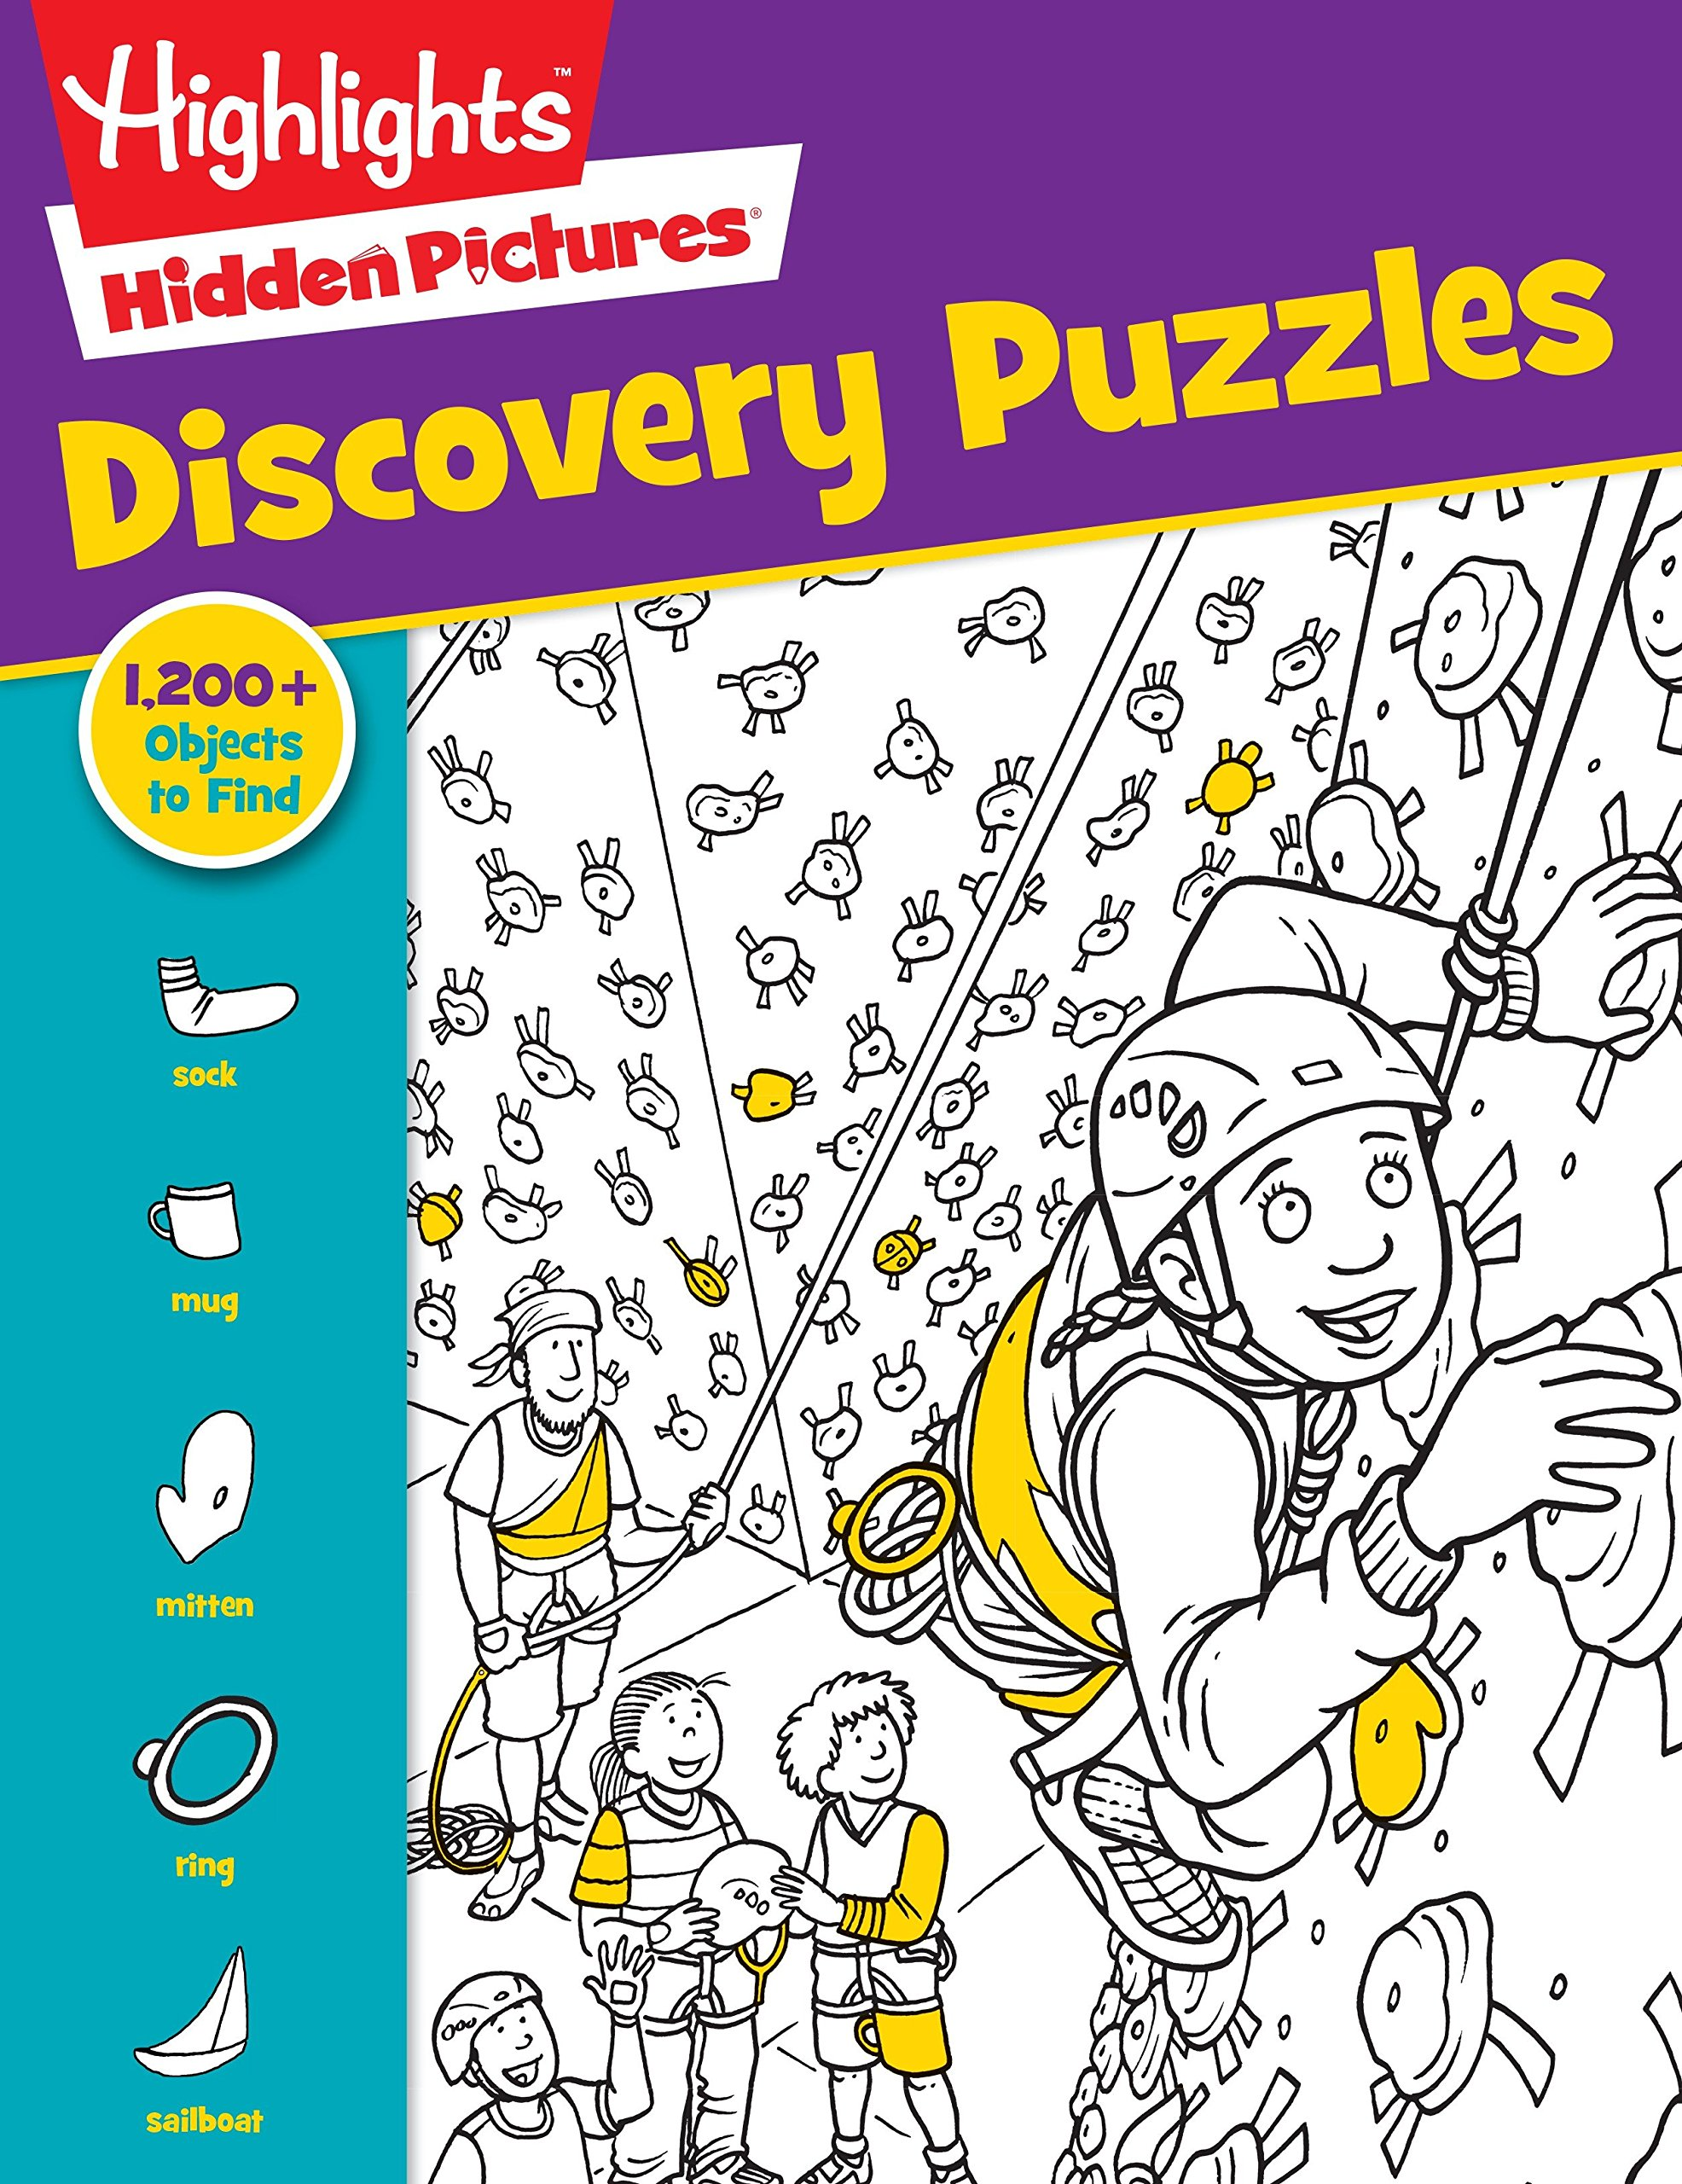 Discovery Puzzles Highlightstm Hidden Pictures Highlights